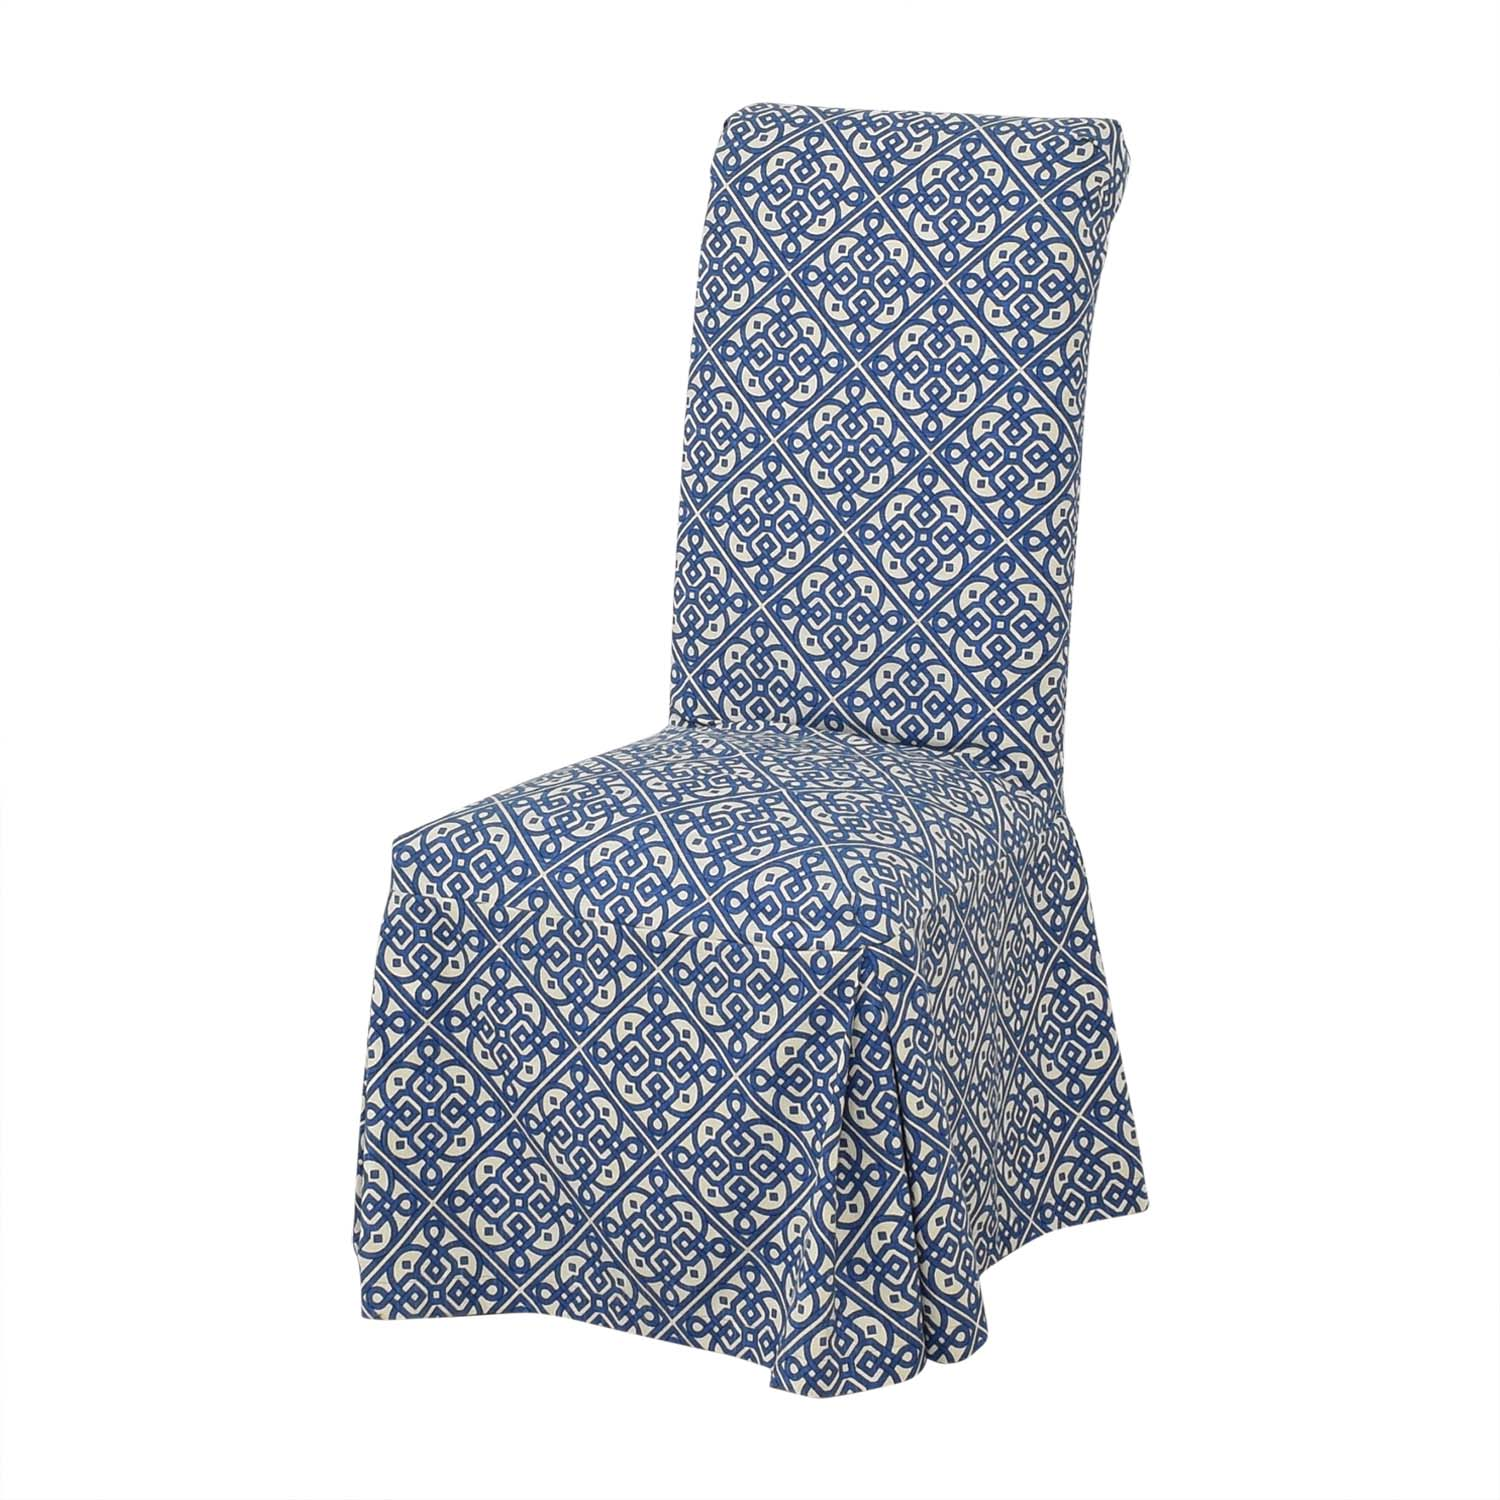 Parsons Custom Slipcovered Dining Chairs price